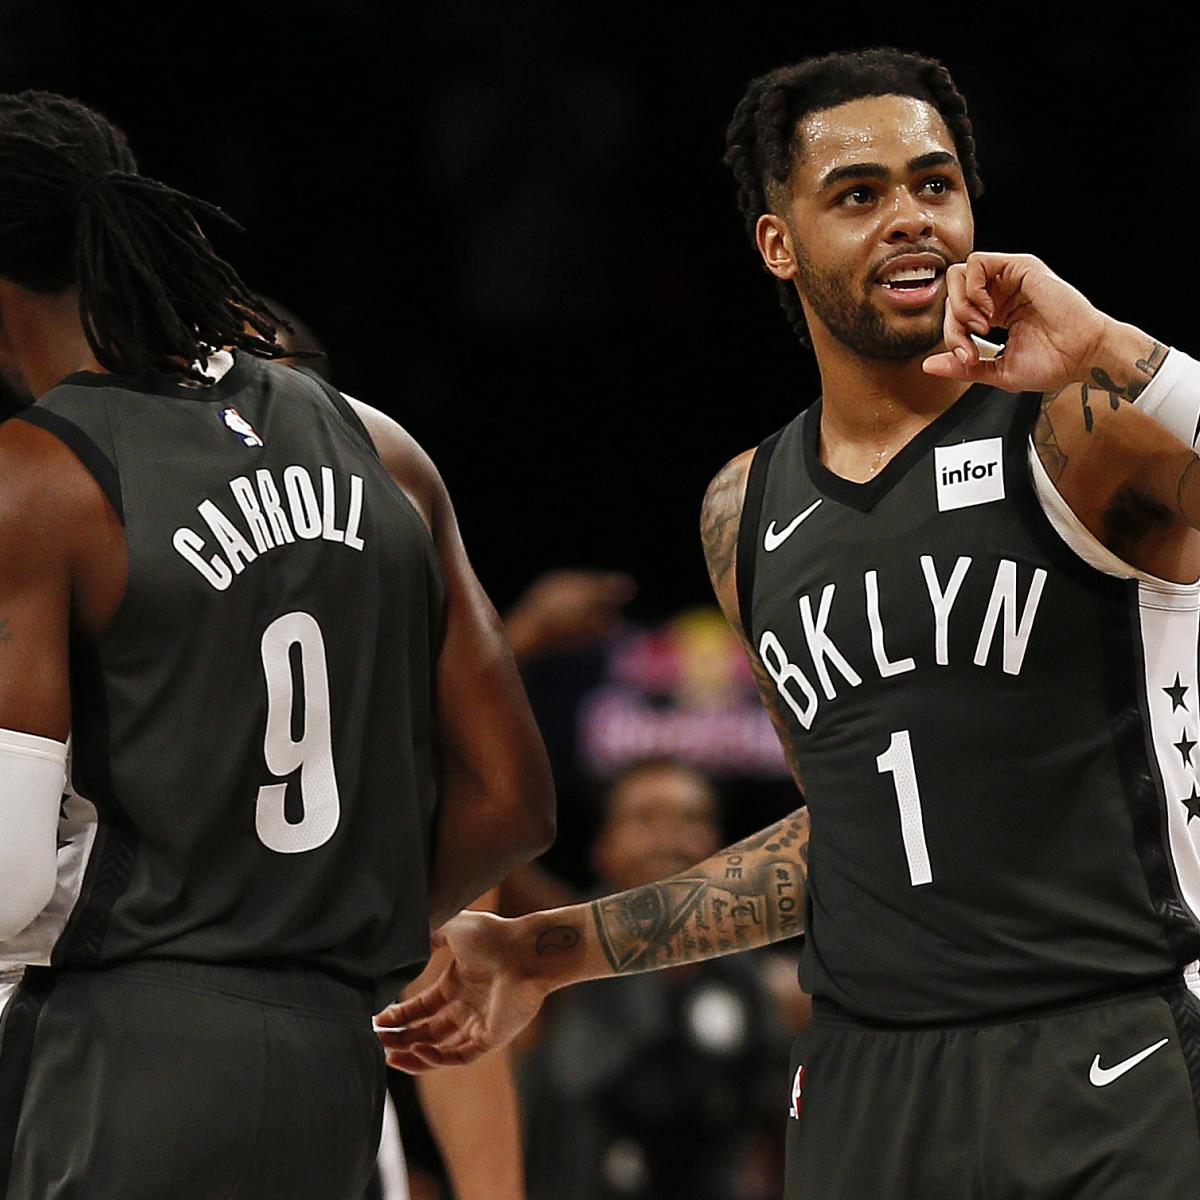 de9c2def863 Did the Lakers Punt Too Soon on Julius Randle, D'Angelo Russell and Others?  | Bleacher Report | Latest News, Videos and Highlights